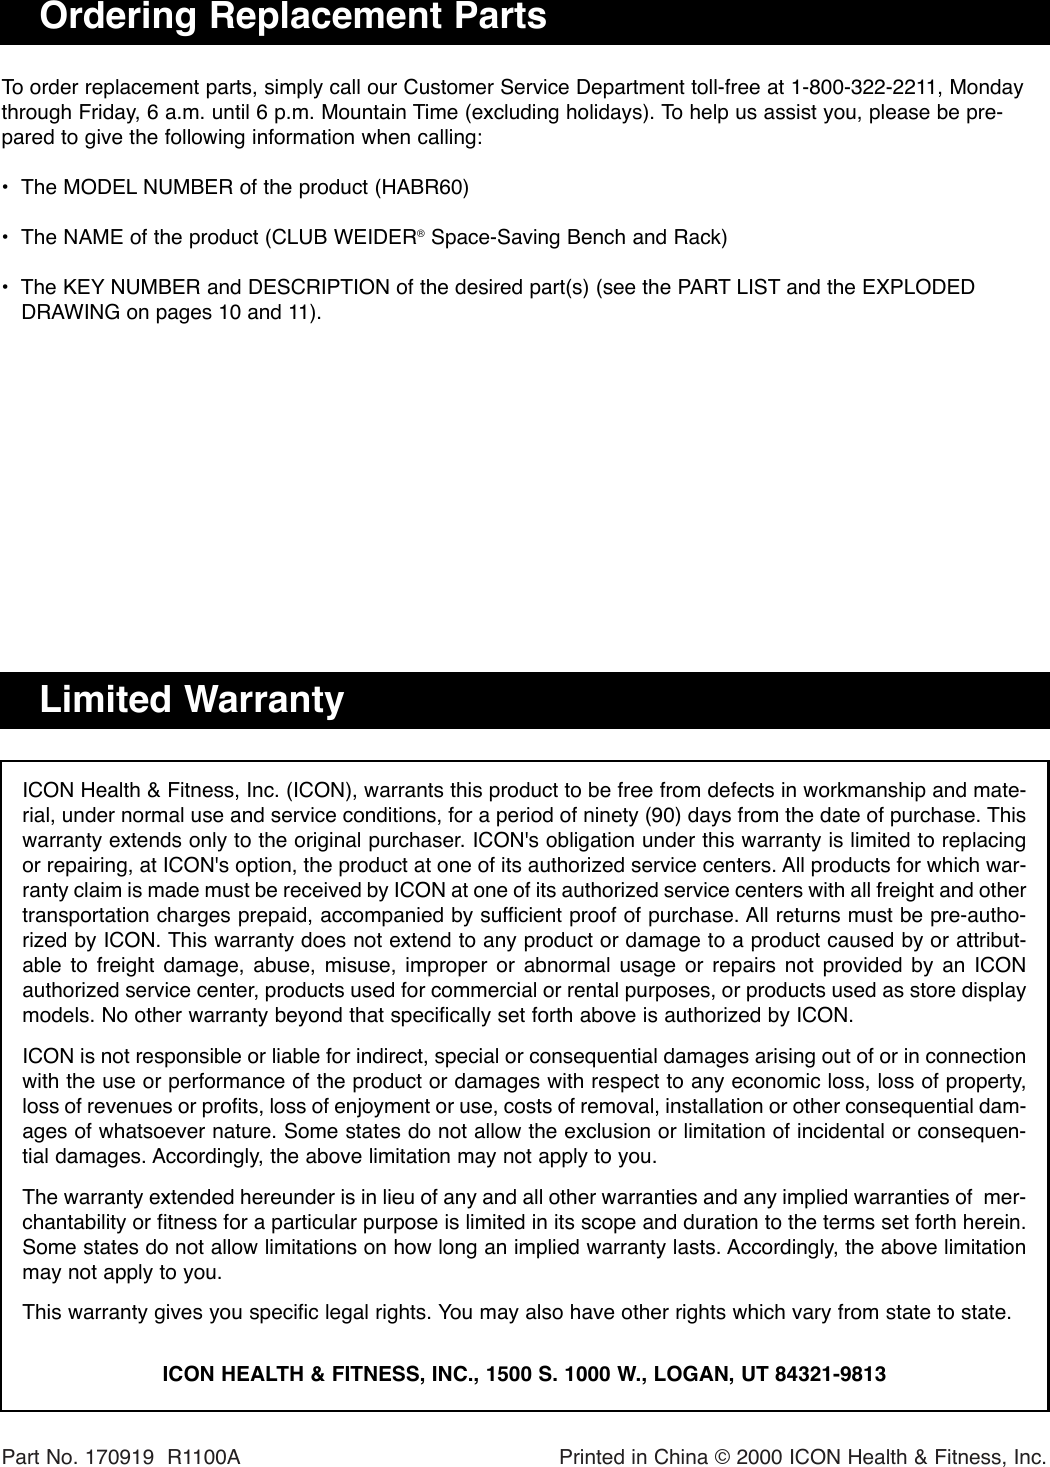 yamaha outboard service manual f90 pid range 61p 1013277current mfg april 2005 and newer